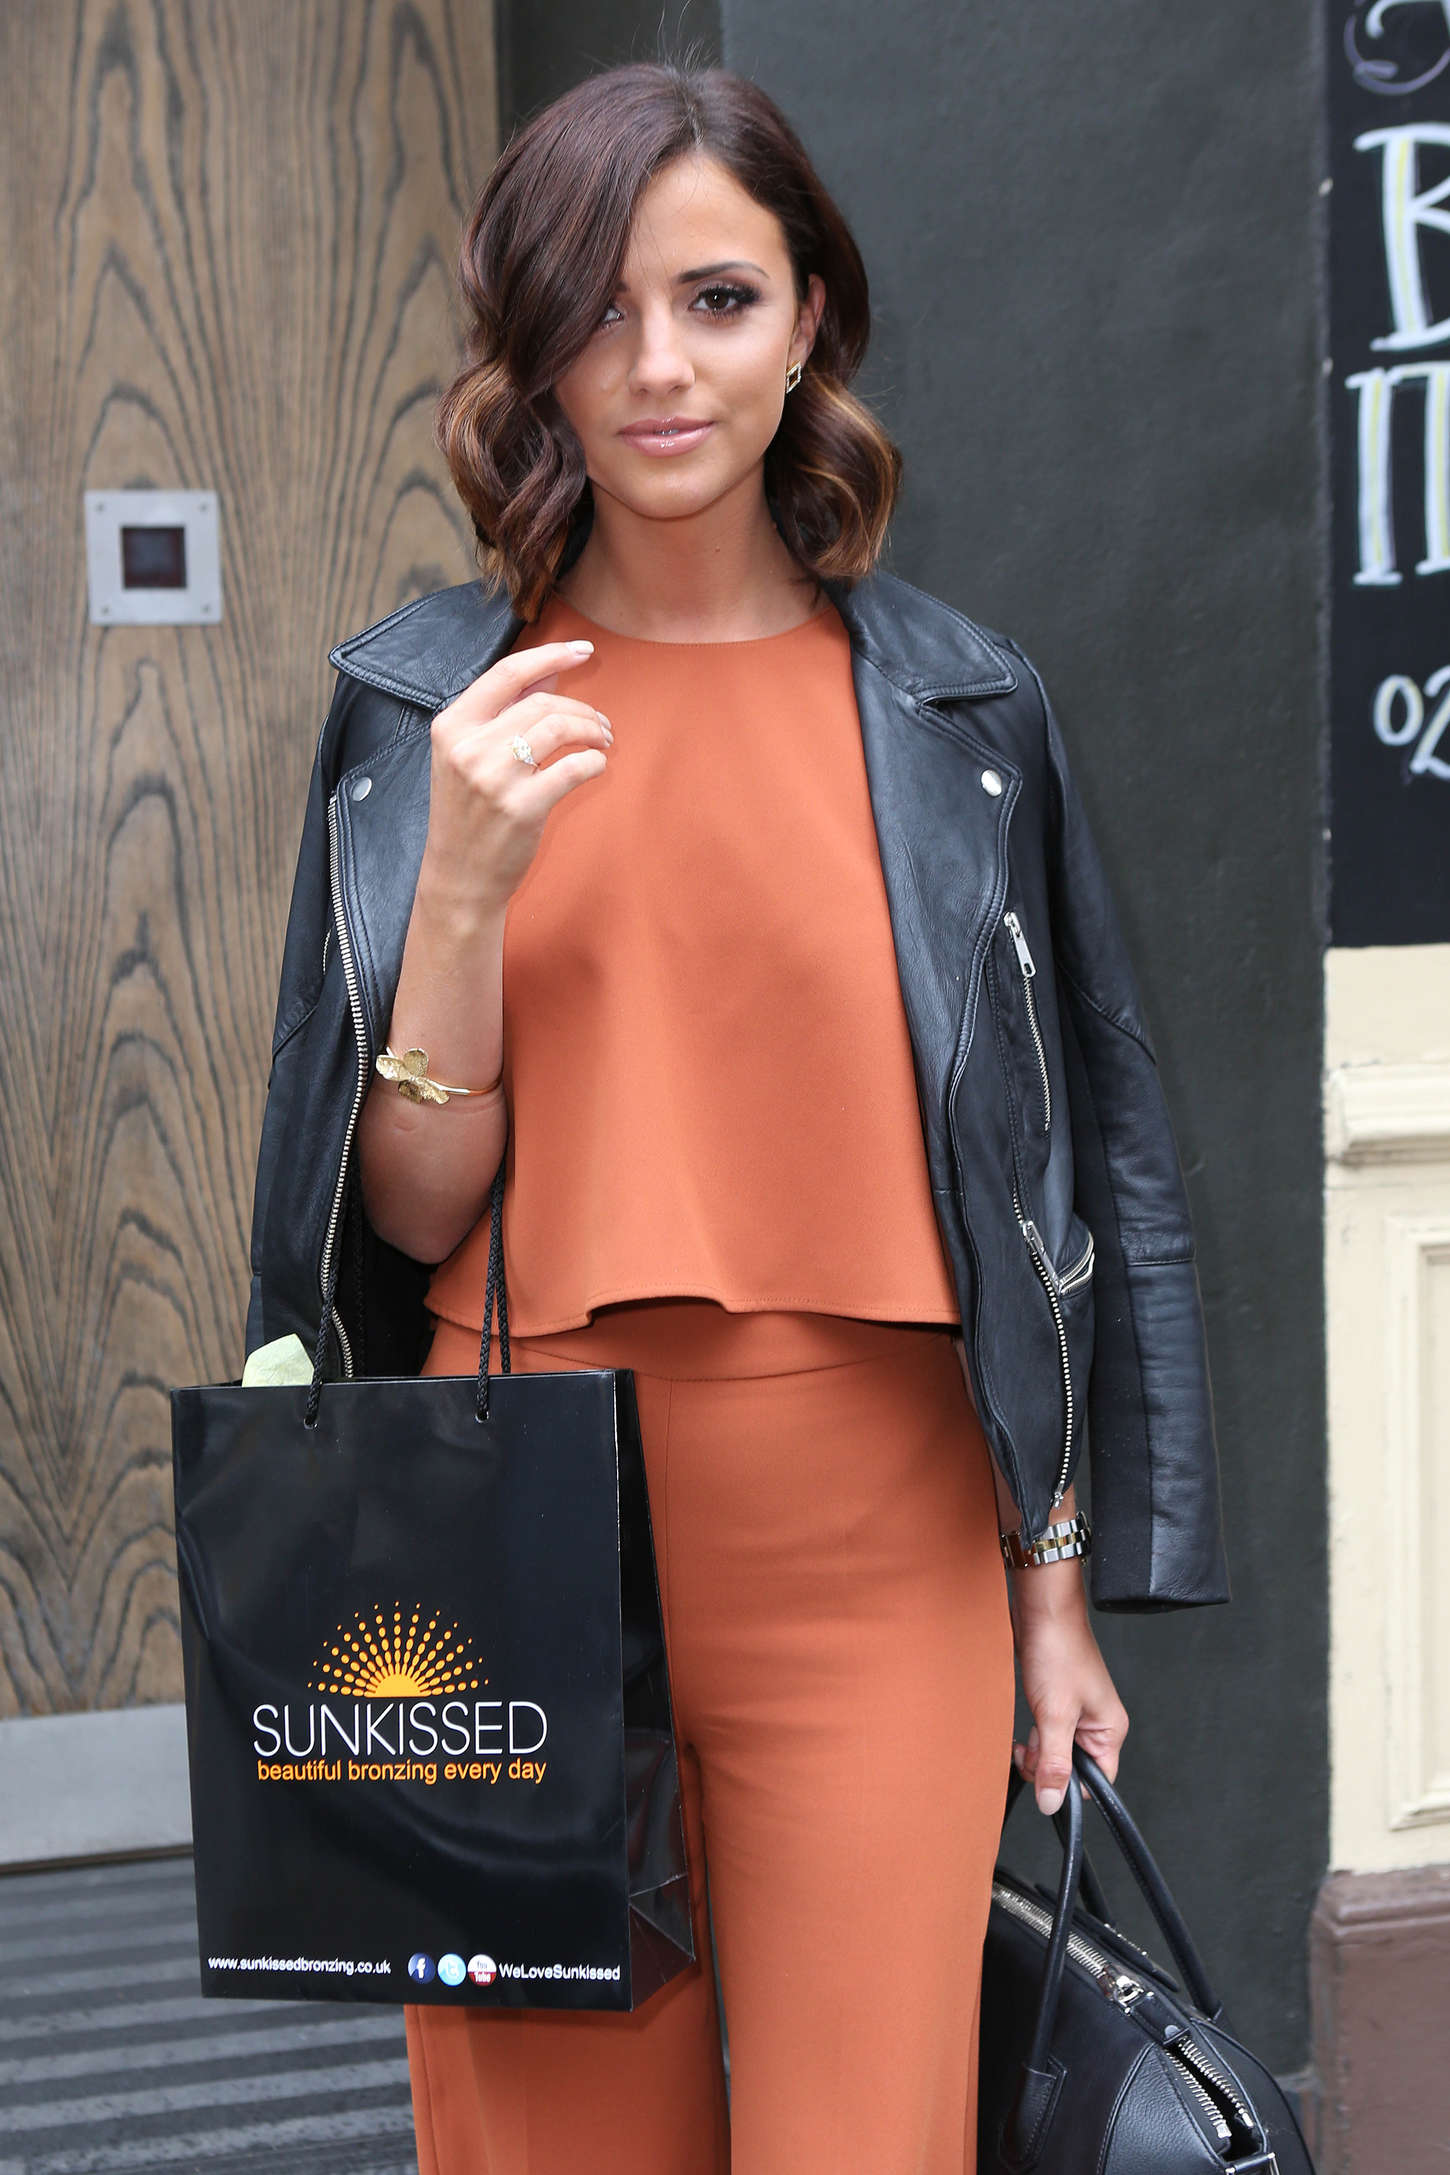 Lucy Mecklenburg - Leaving Century After Promoting SunKissed Tanning in London